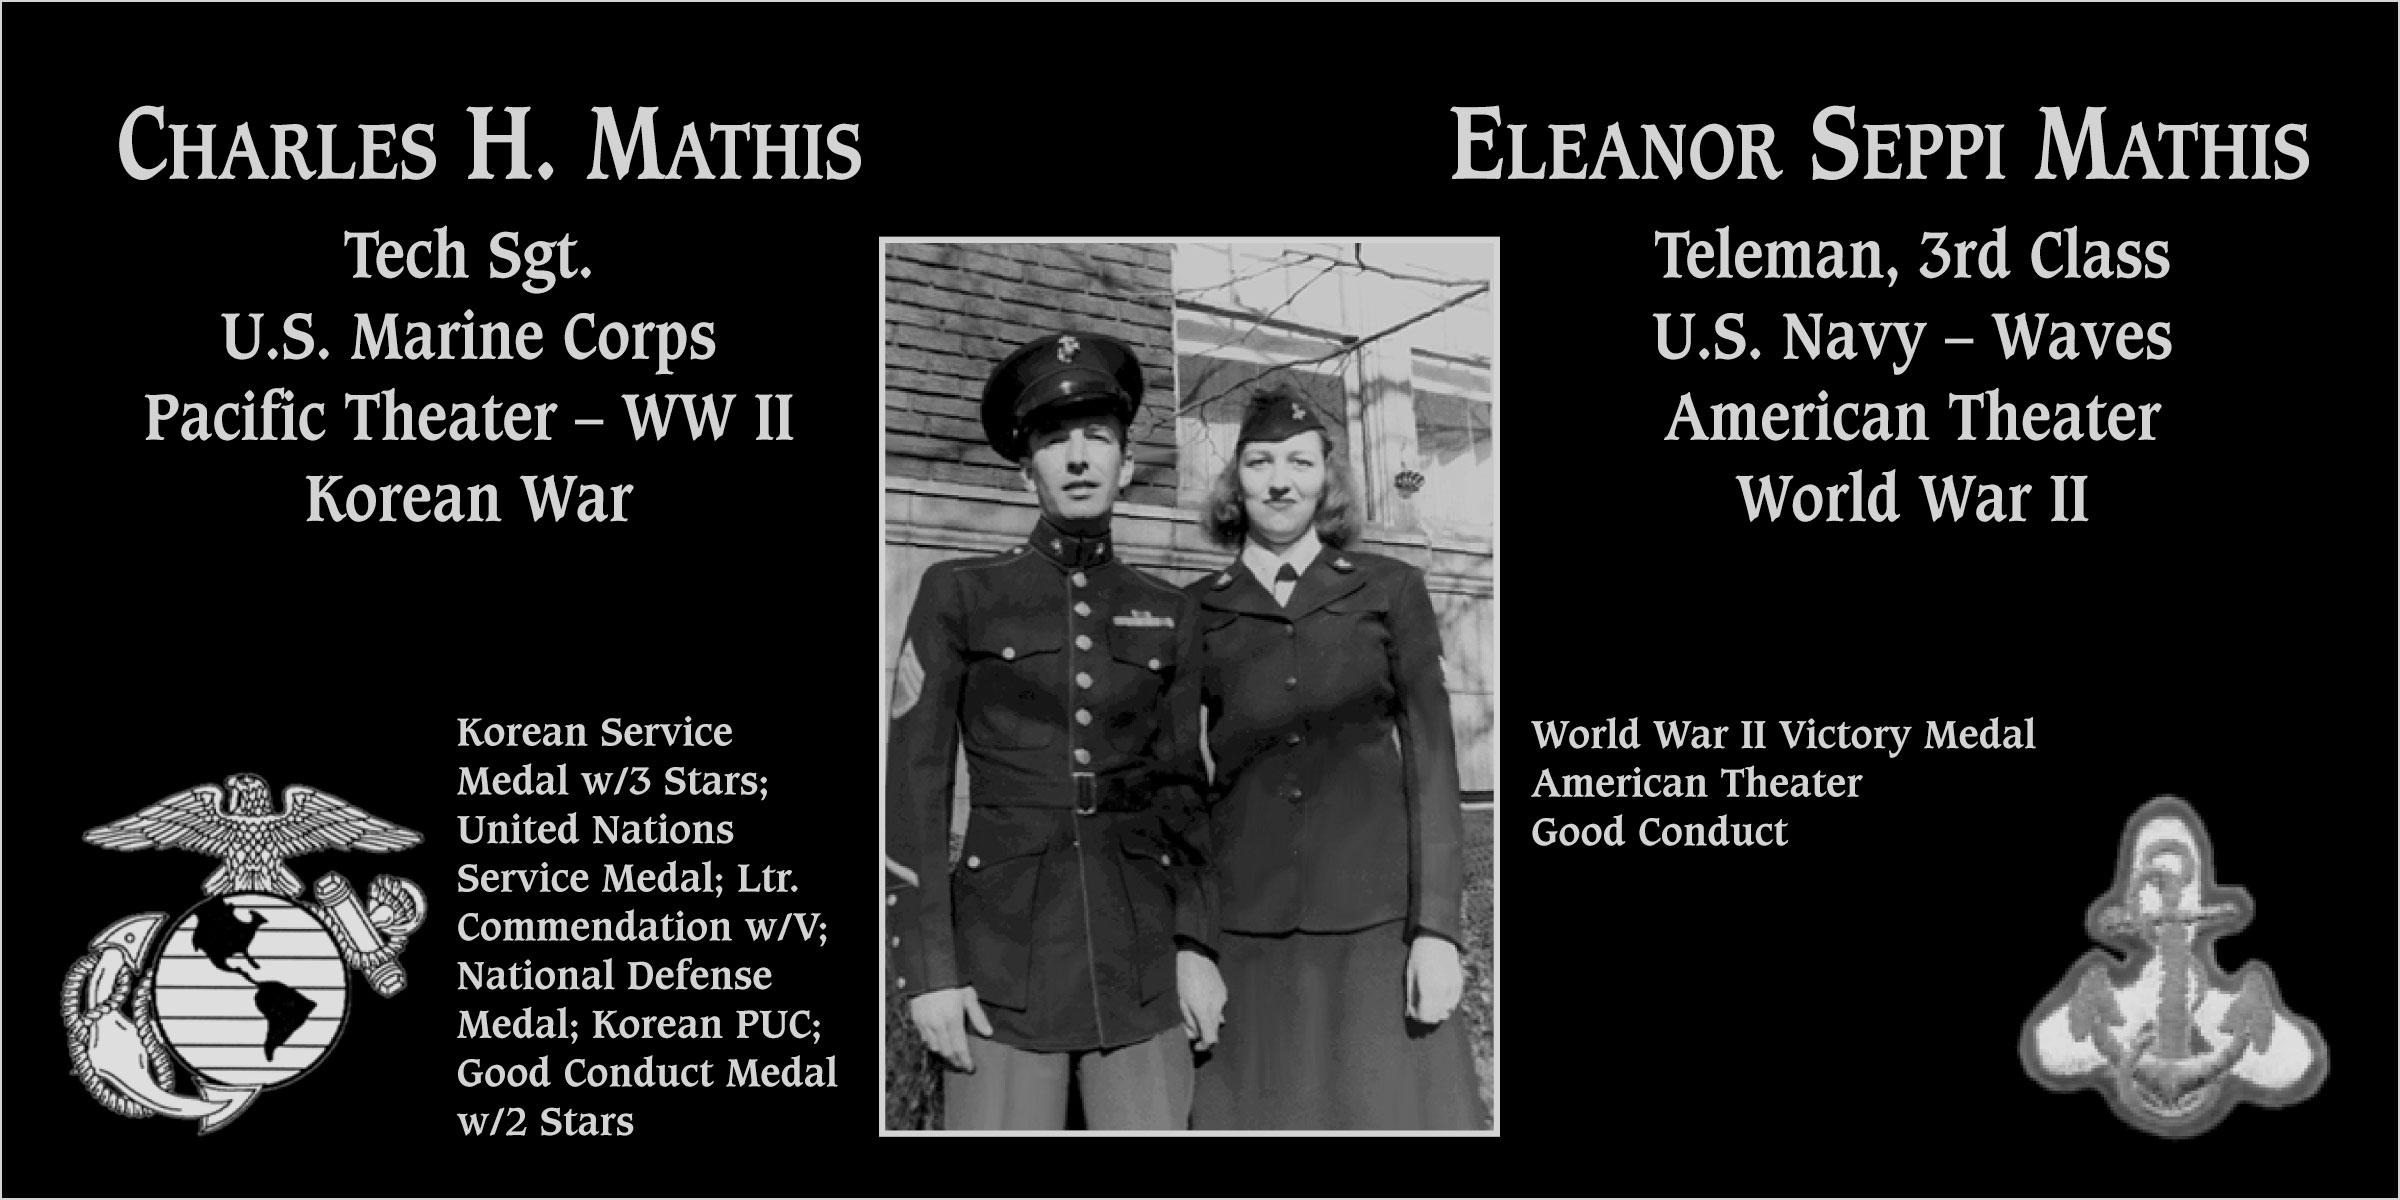 Charles H. & Eleanor Seppi Mathis